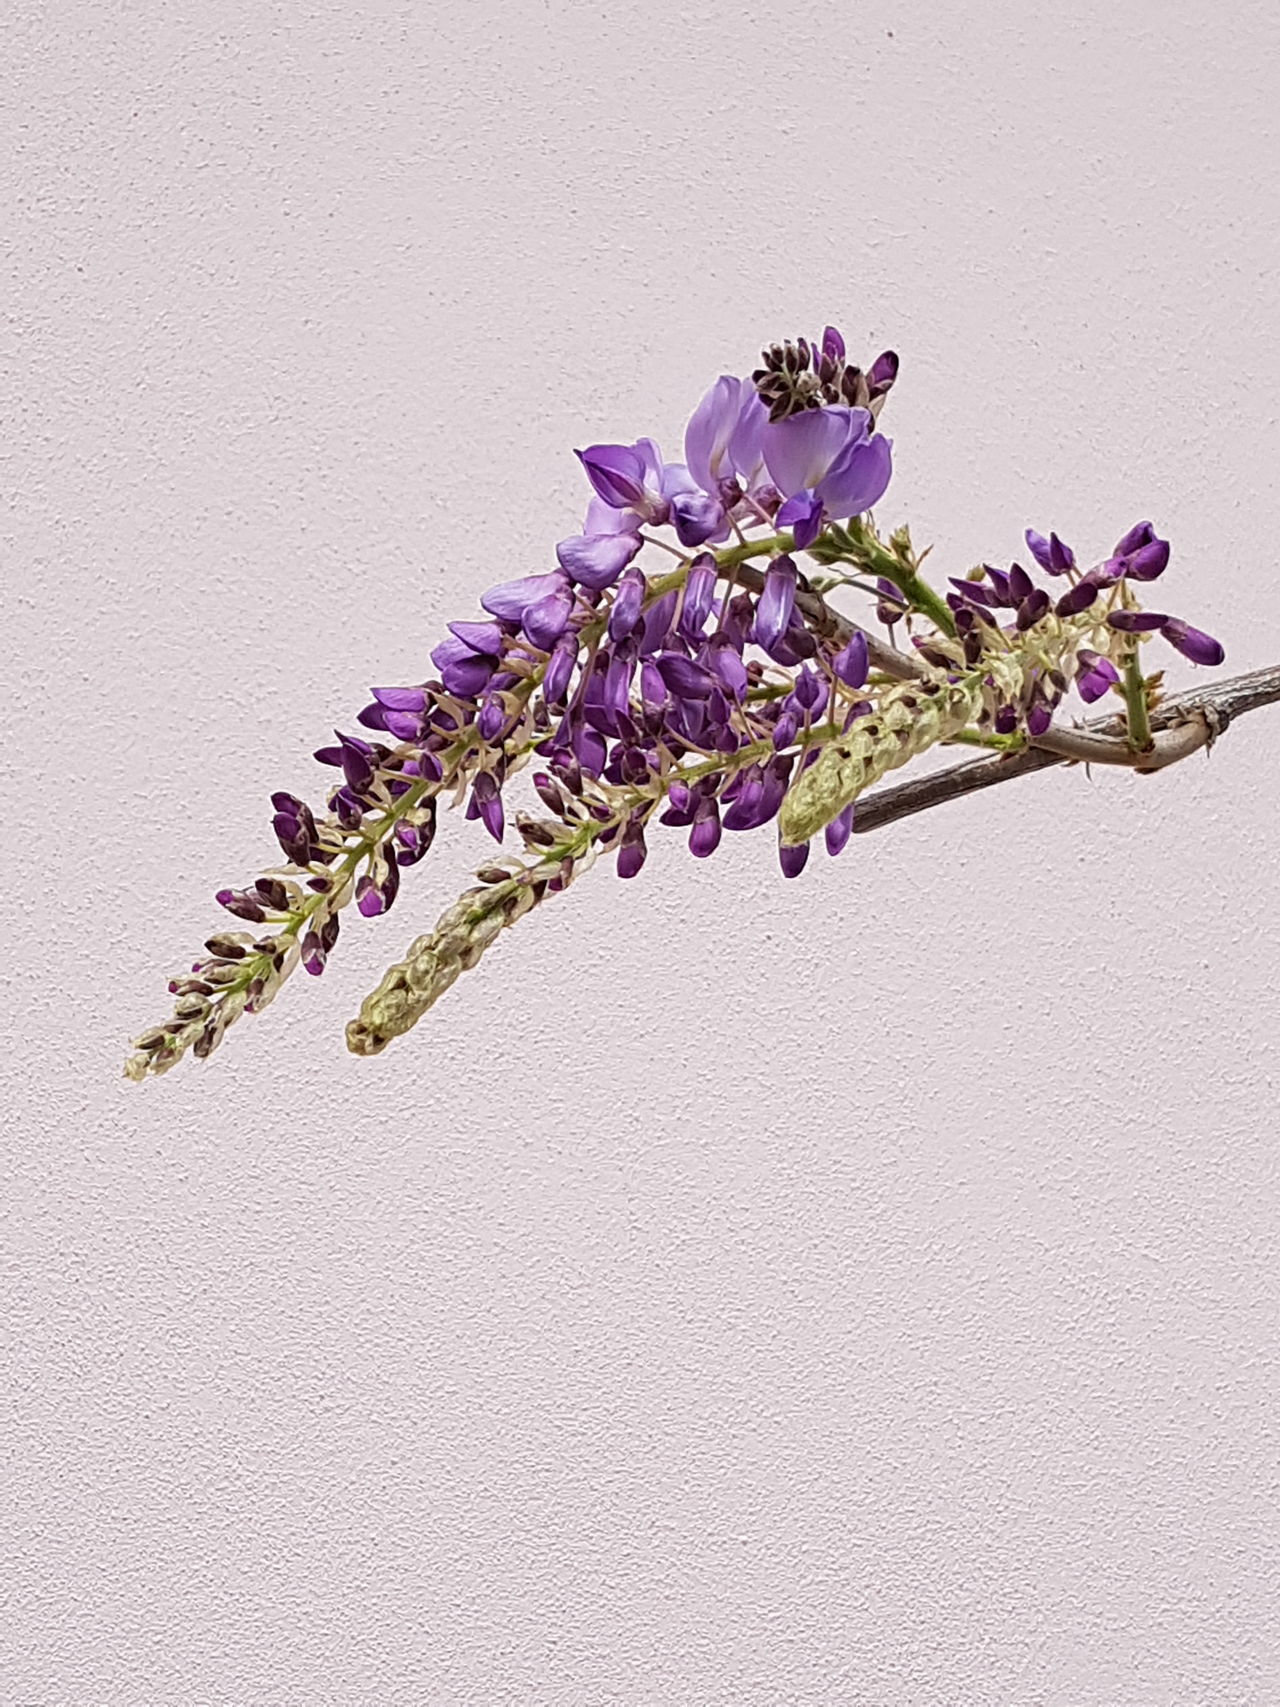 Glicine Glicineinfiore Flower Fragility Beauty In Nature Purple Freshness Blossom Nature Growth Plant No People Close-up Branch Flower Head Outdoors Lavender Day